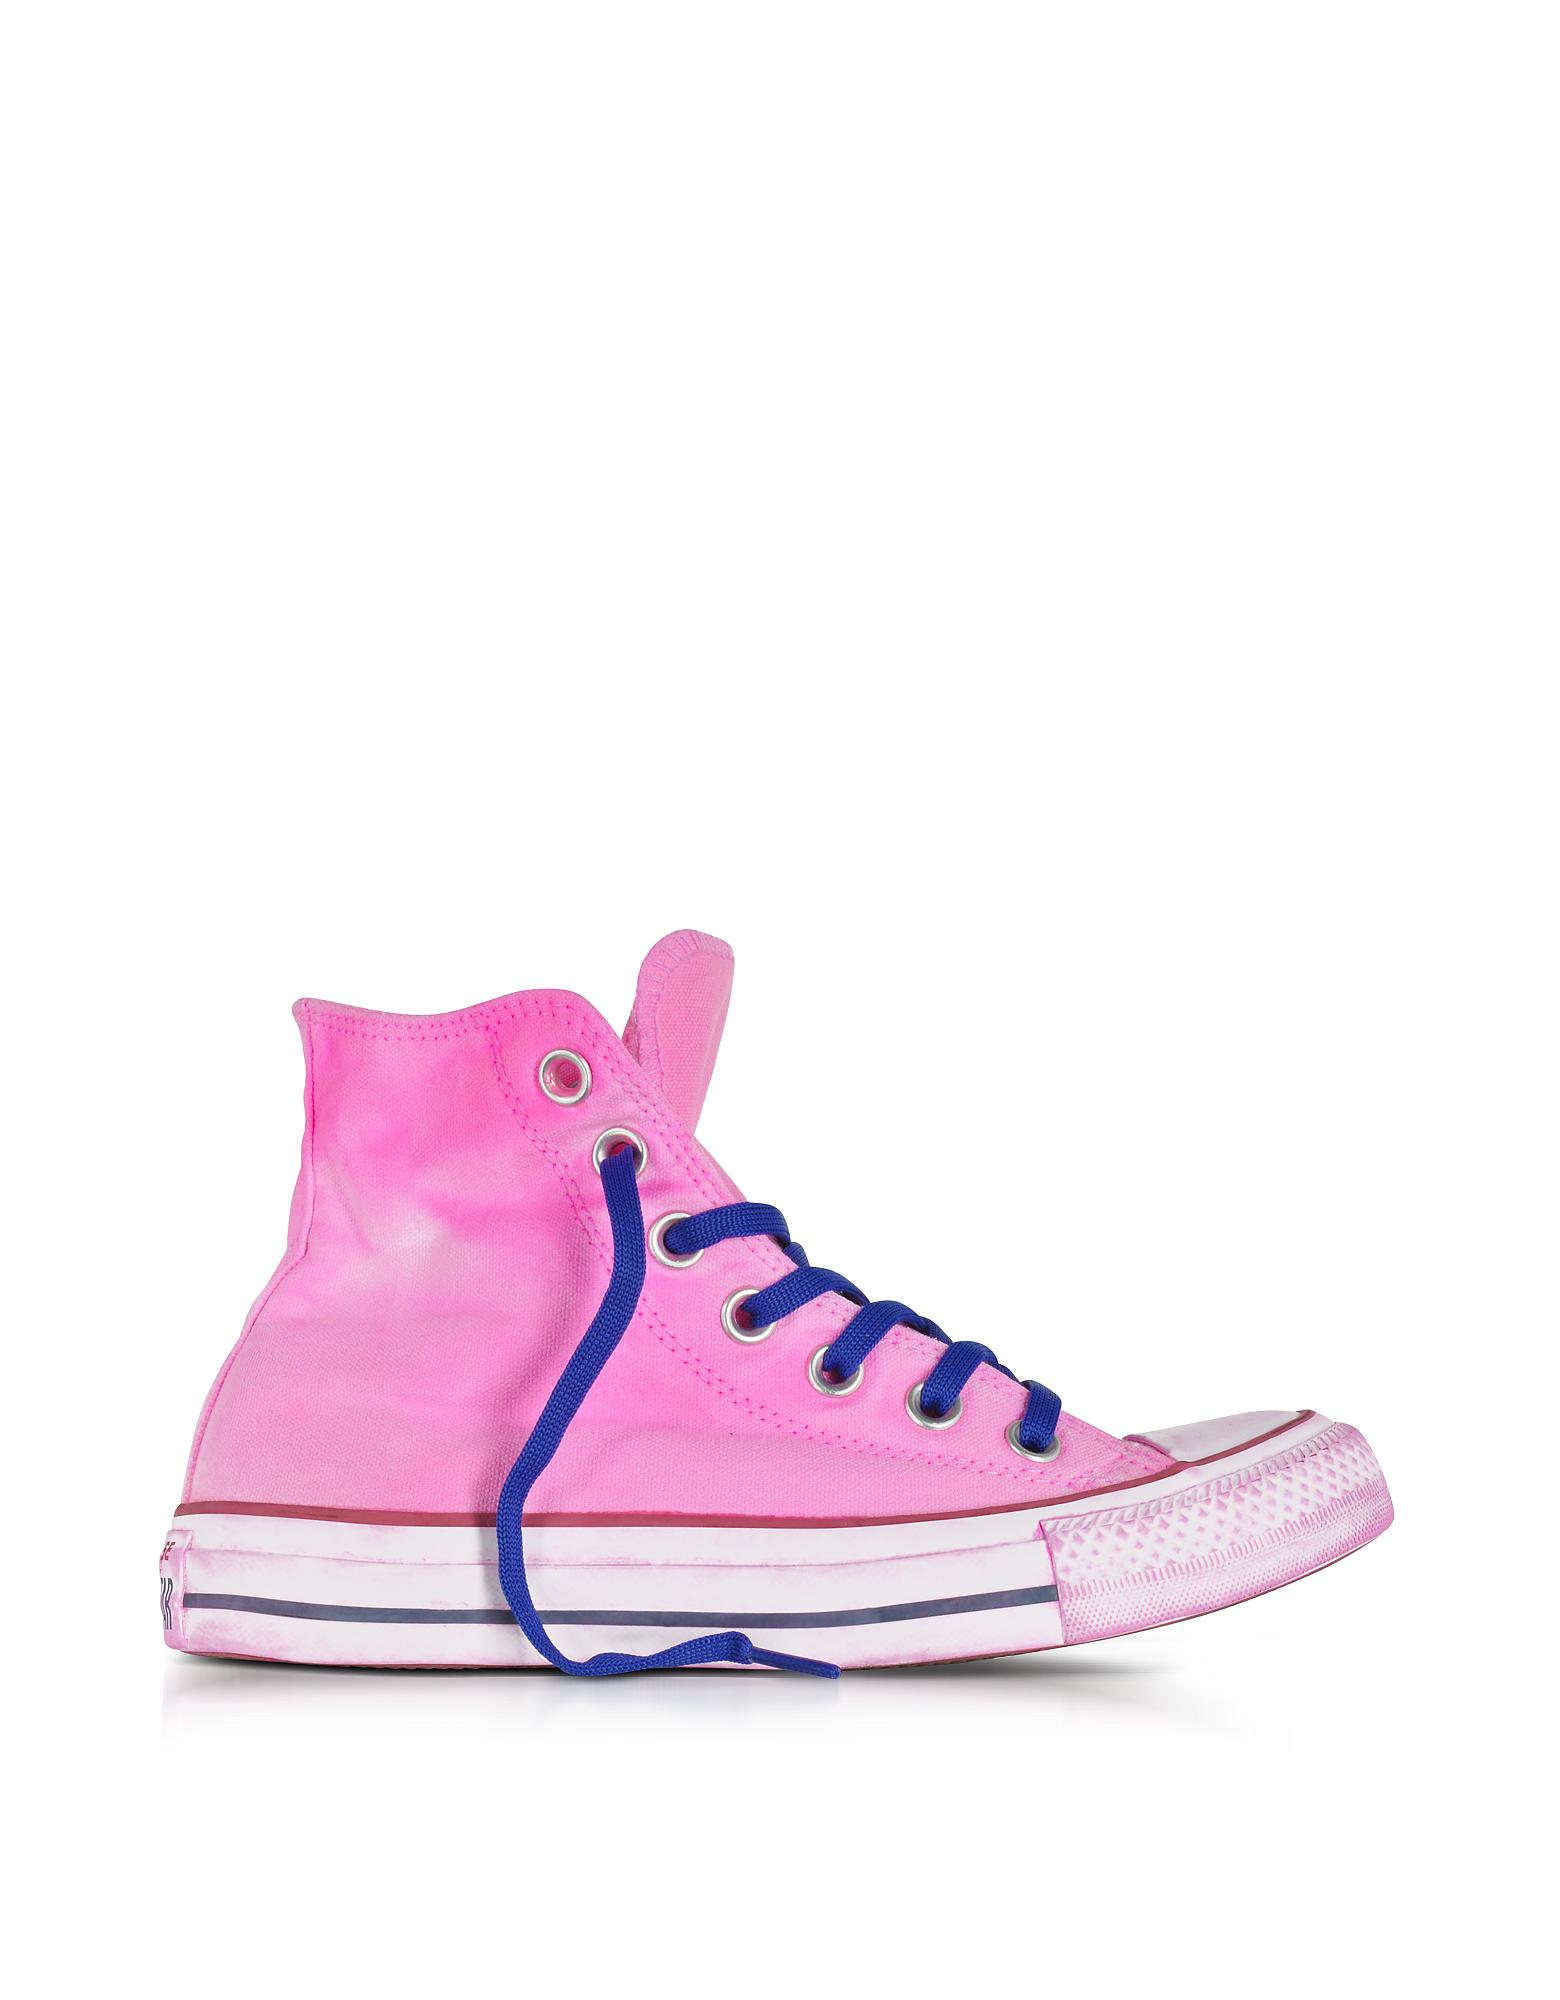 1dda81176692 Lyst - Converse Chuck Taylor All Star Hi Neon Fuchsia Canvas Ltd ...